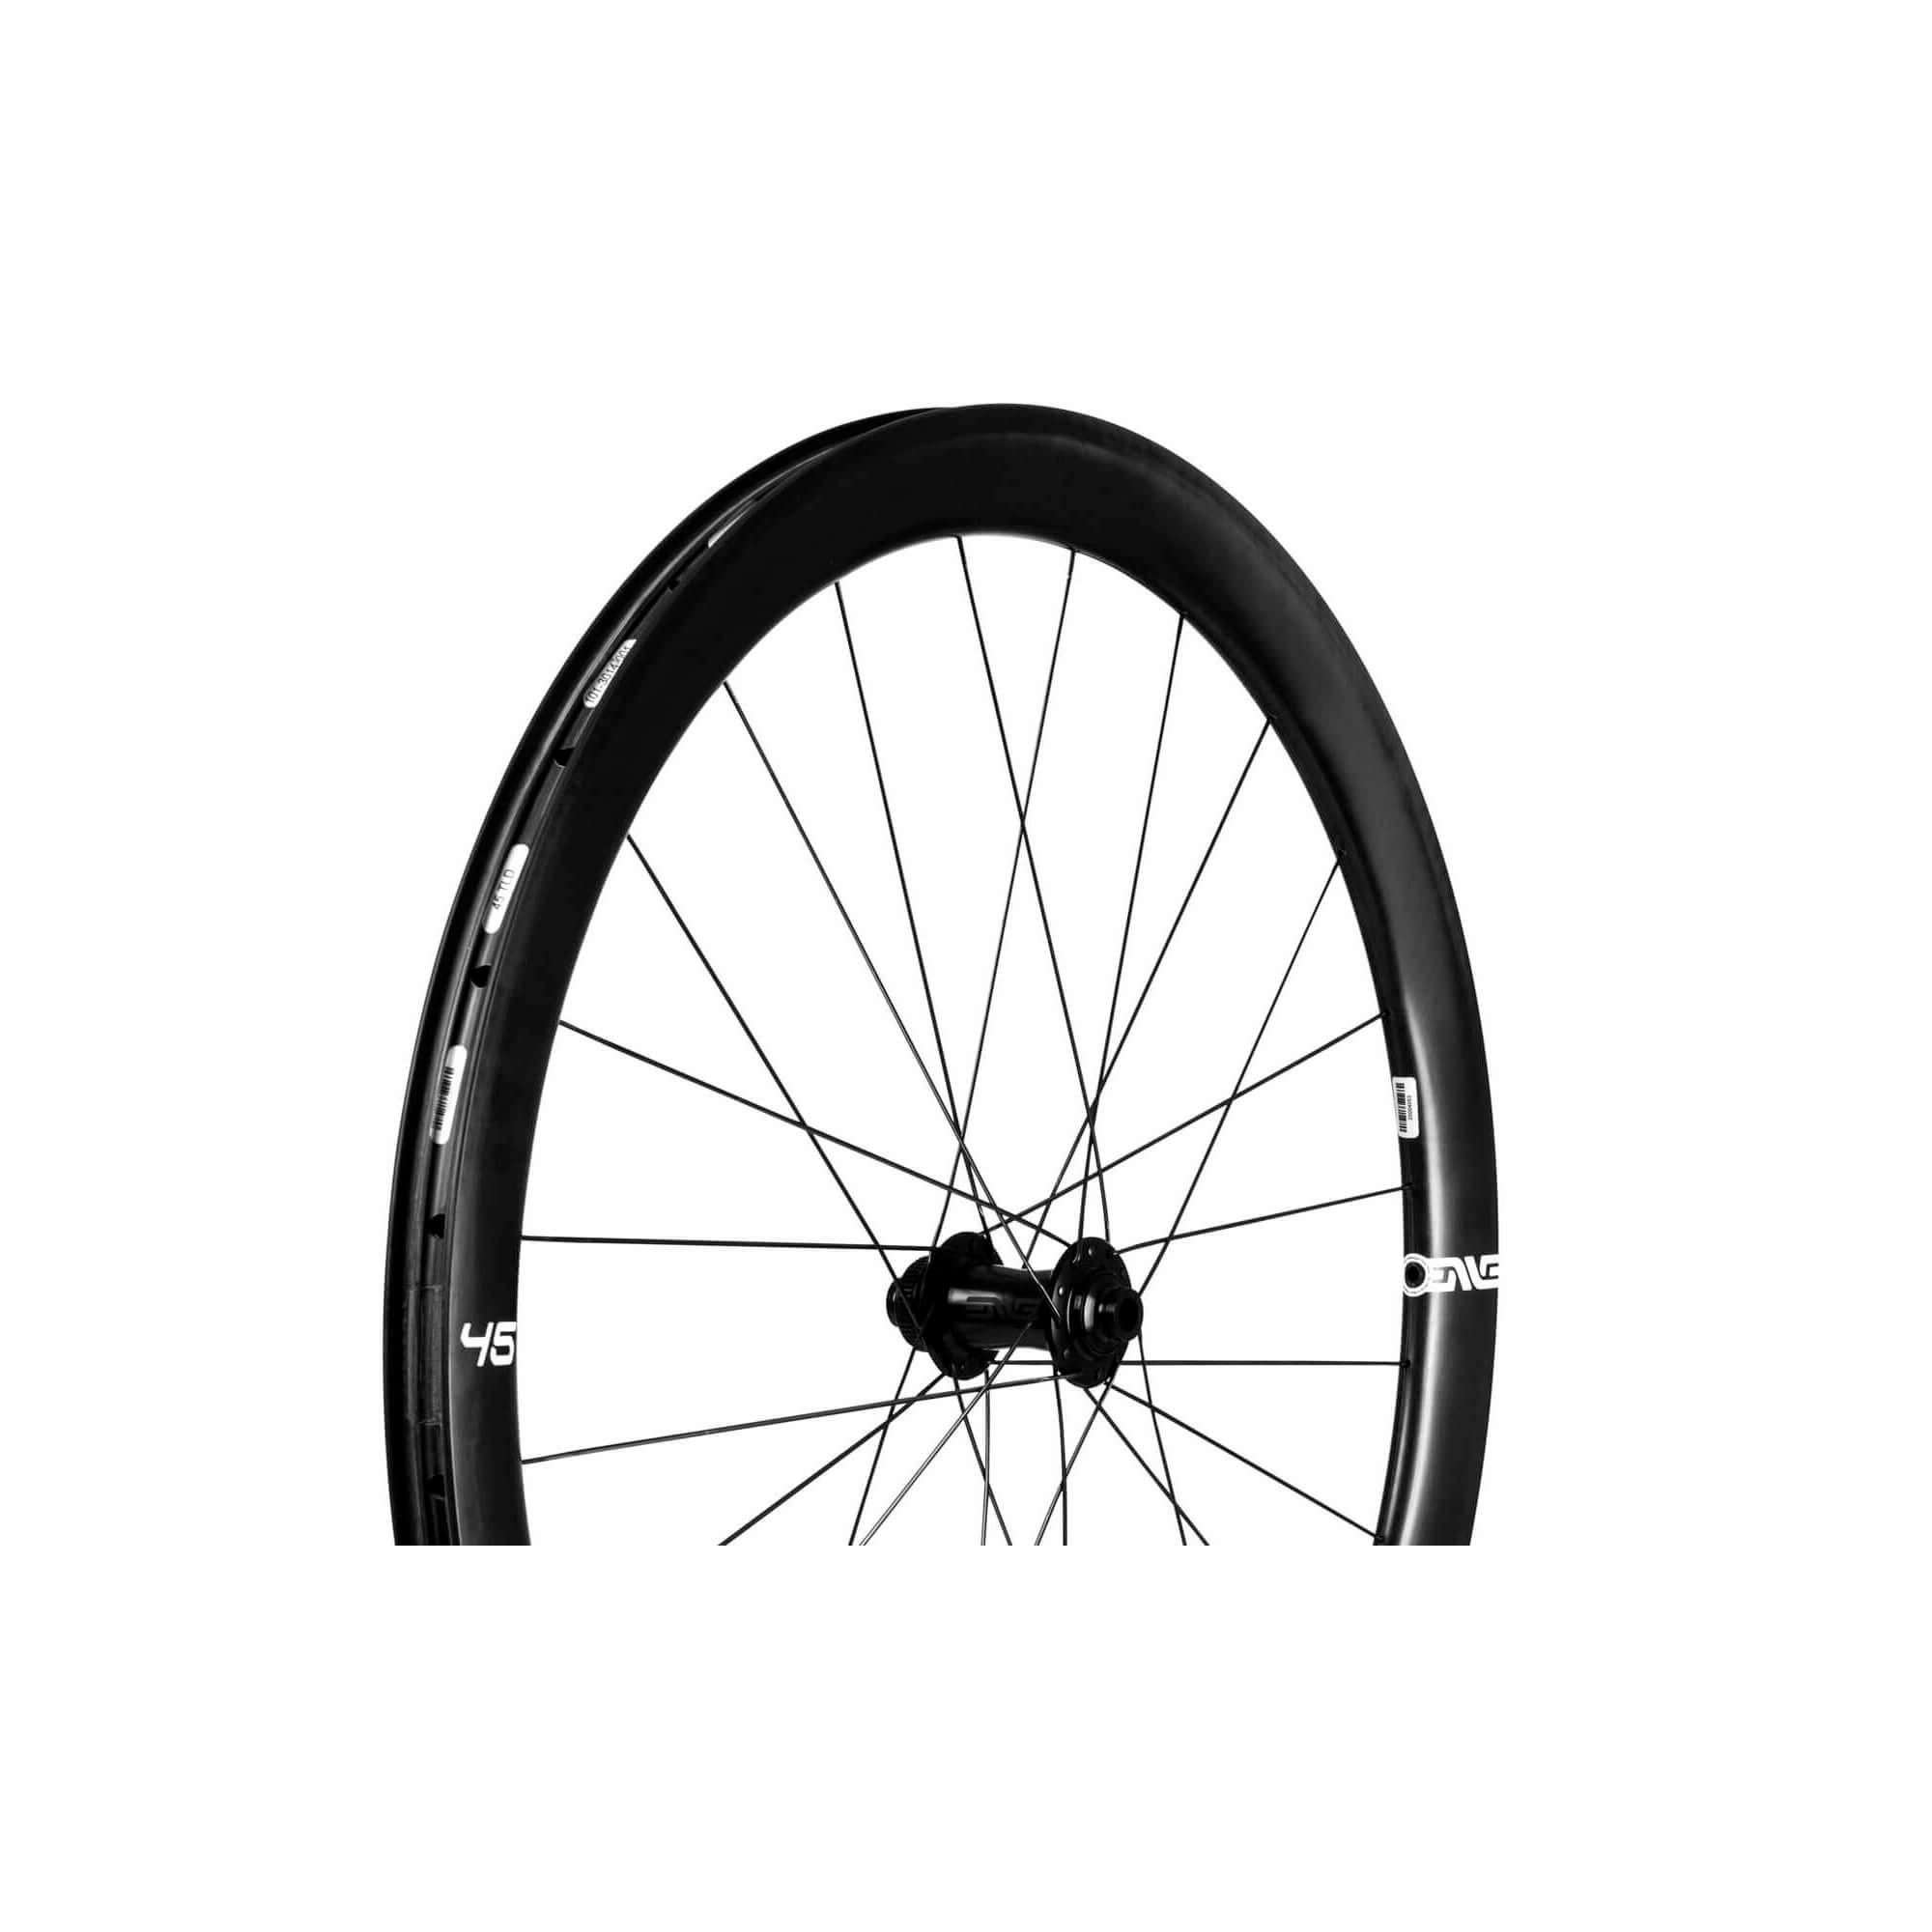 Wheelset Disc Foundation 12/142 XDR CL-2